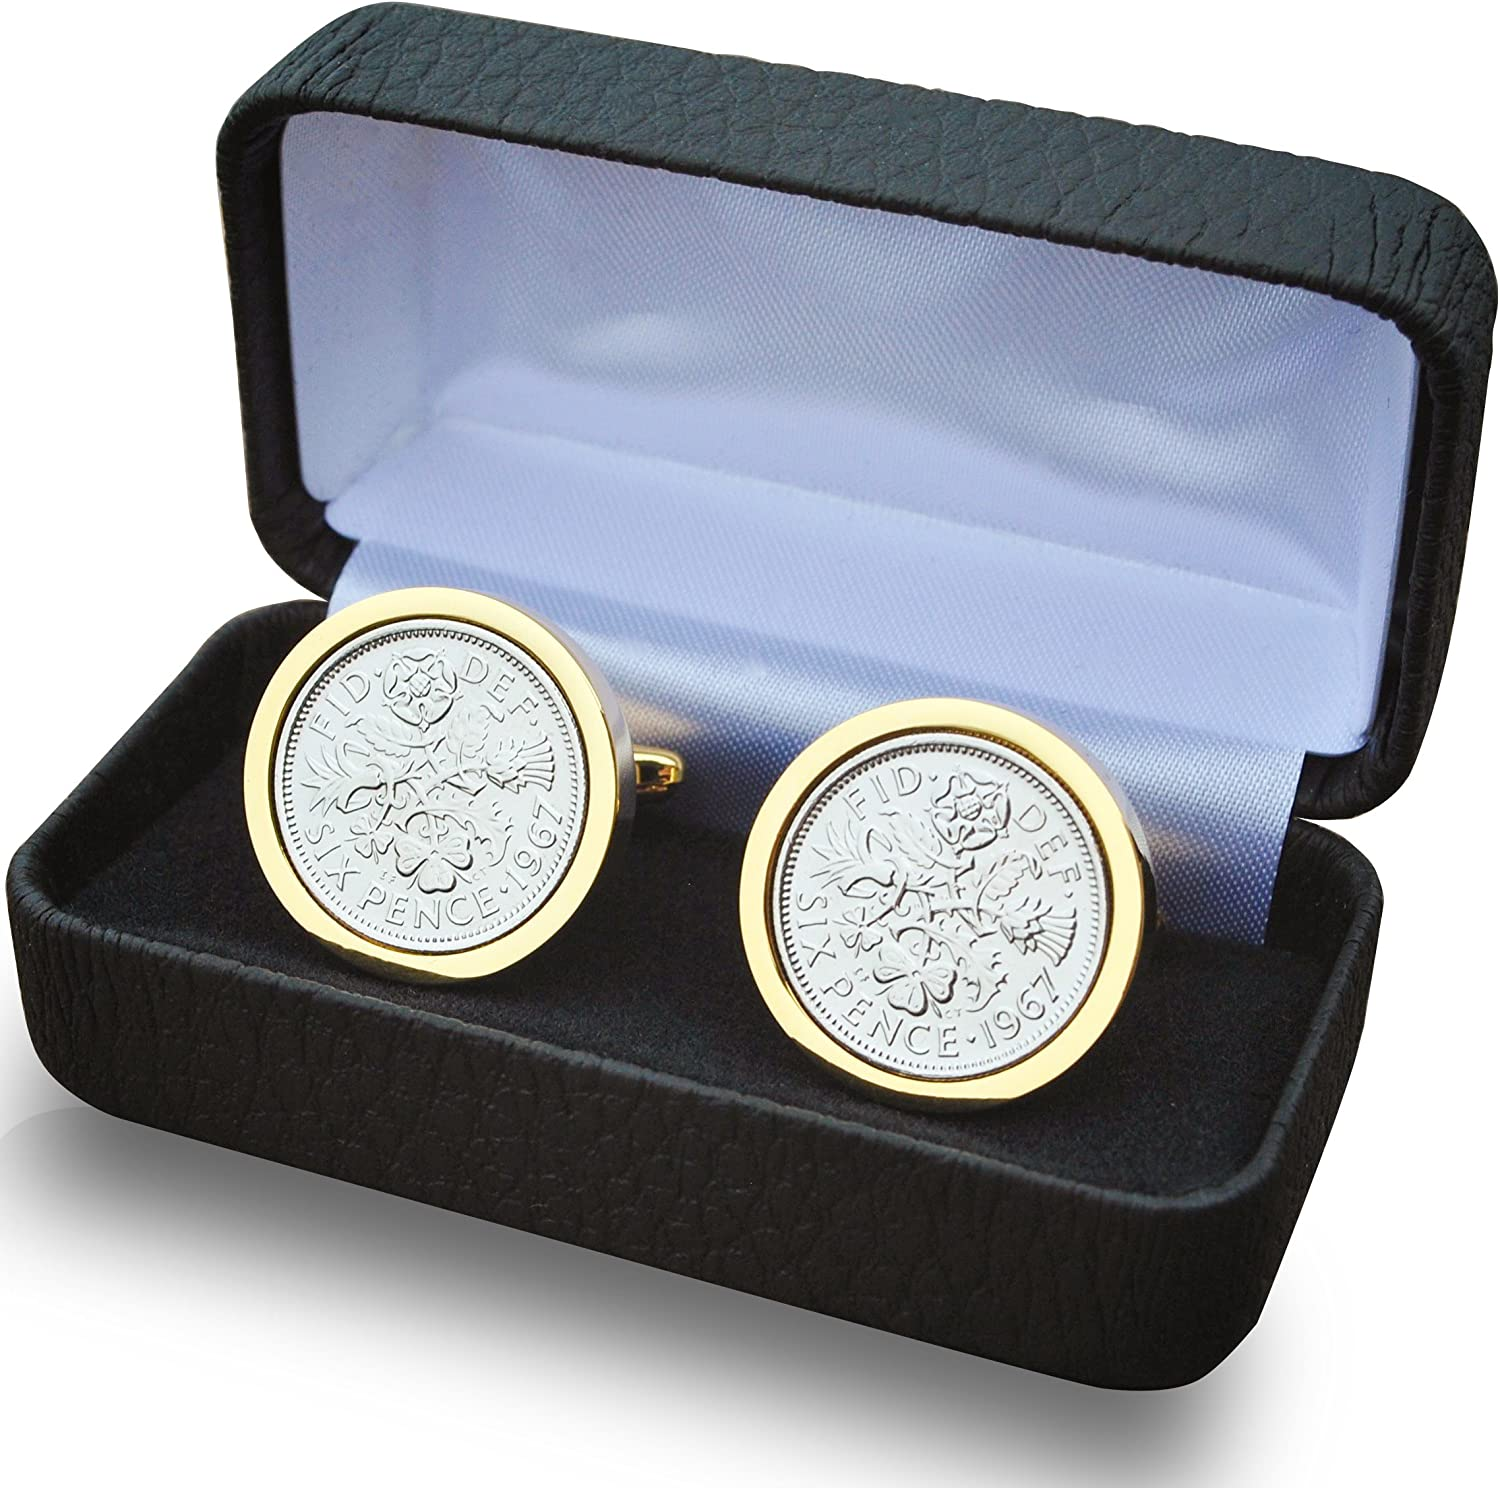 Genuine Polished 1947 Gold Sixpence Coin Cufflinks Vintage Gift Boxed 72nd Birthday Anniversary Present